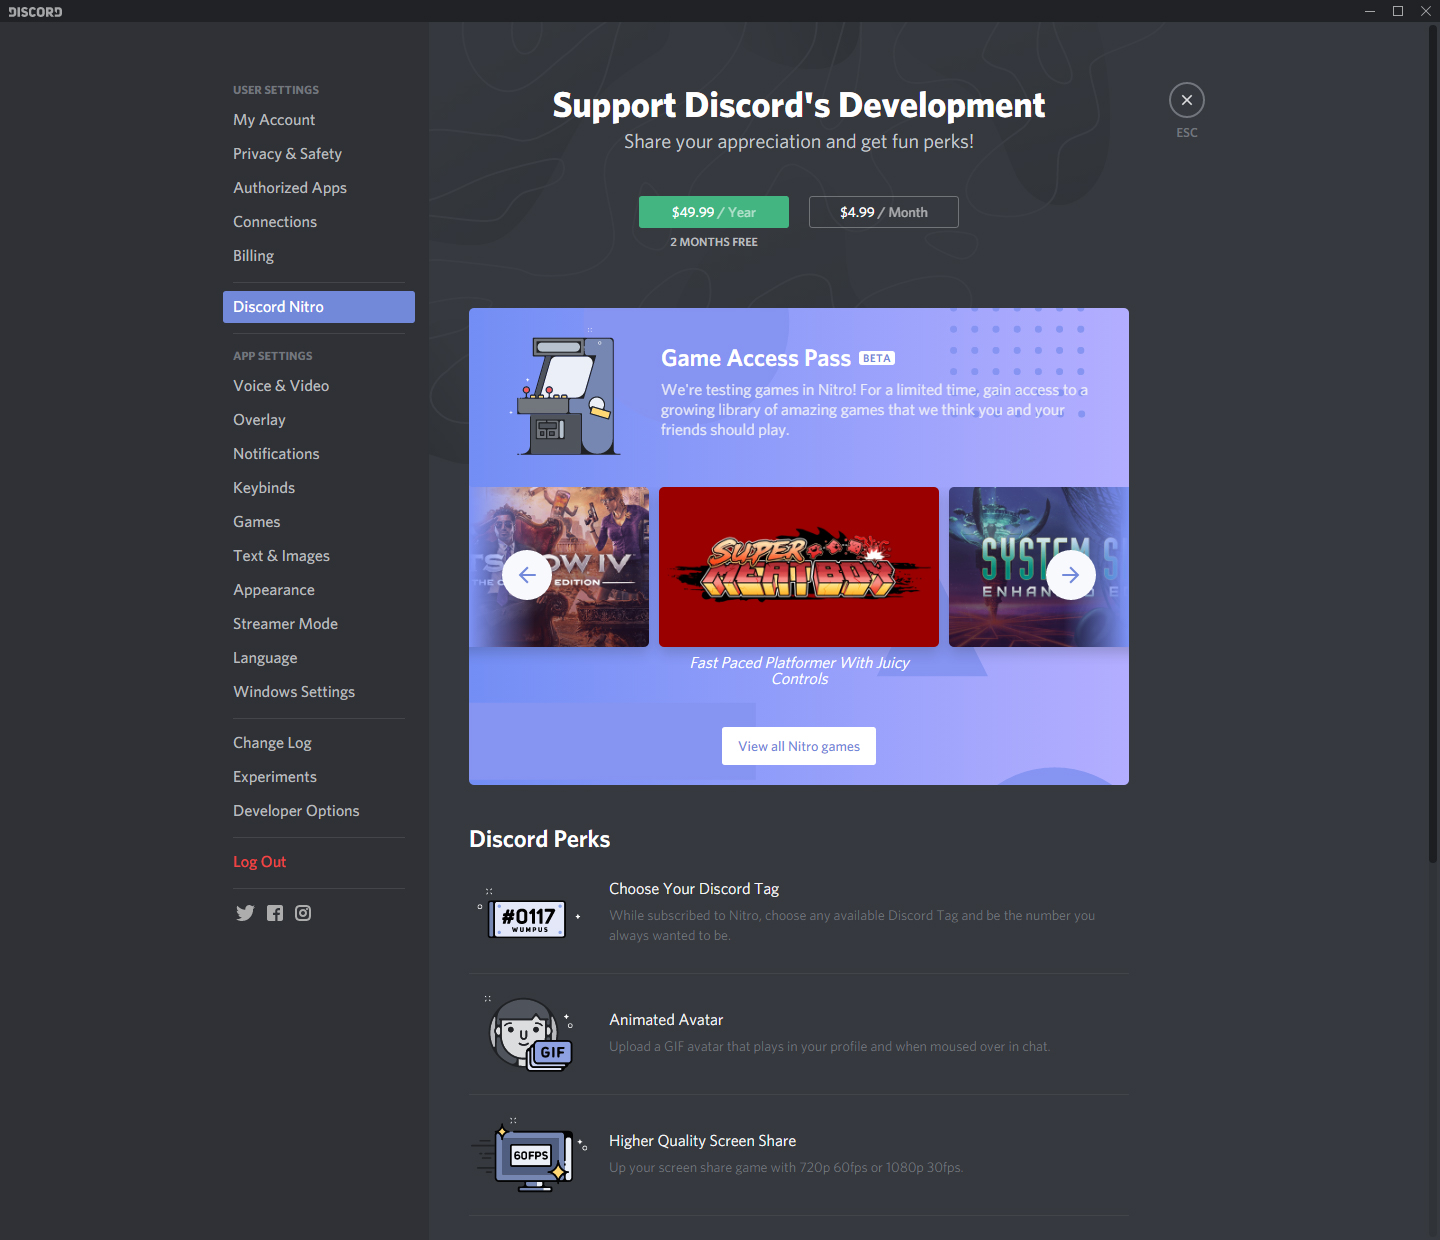 Discord to Start Selling Video Games